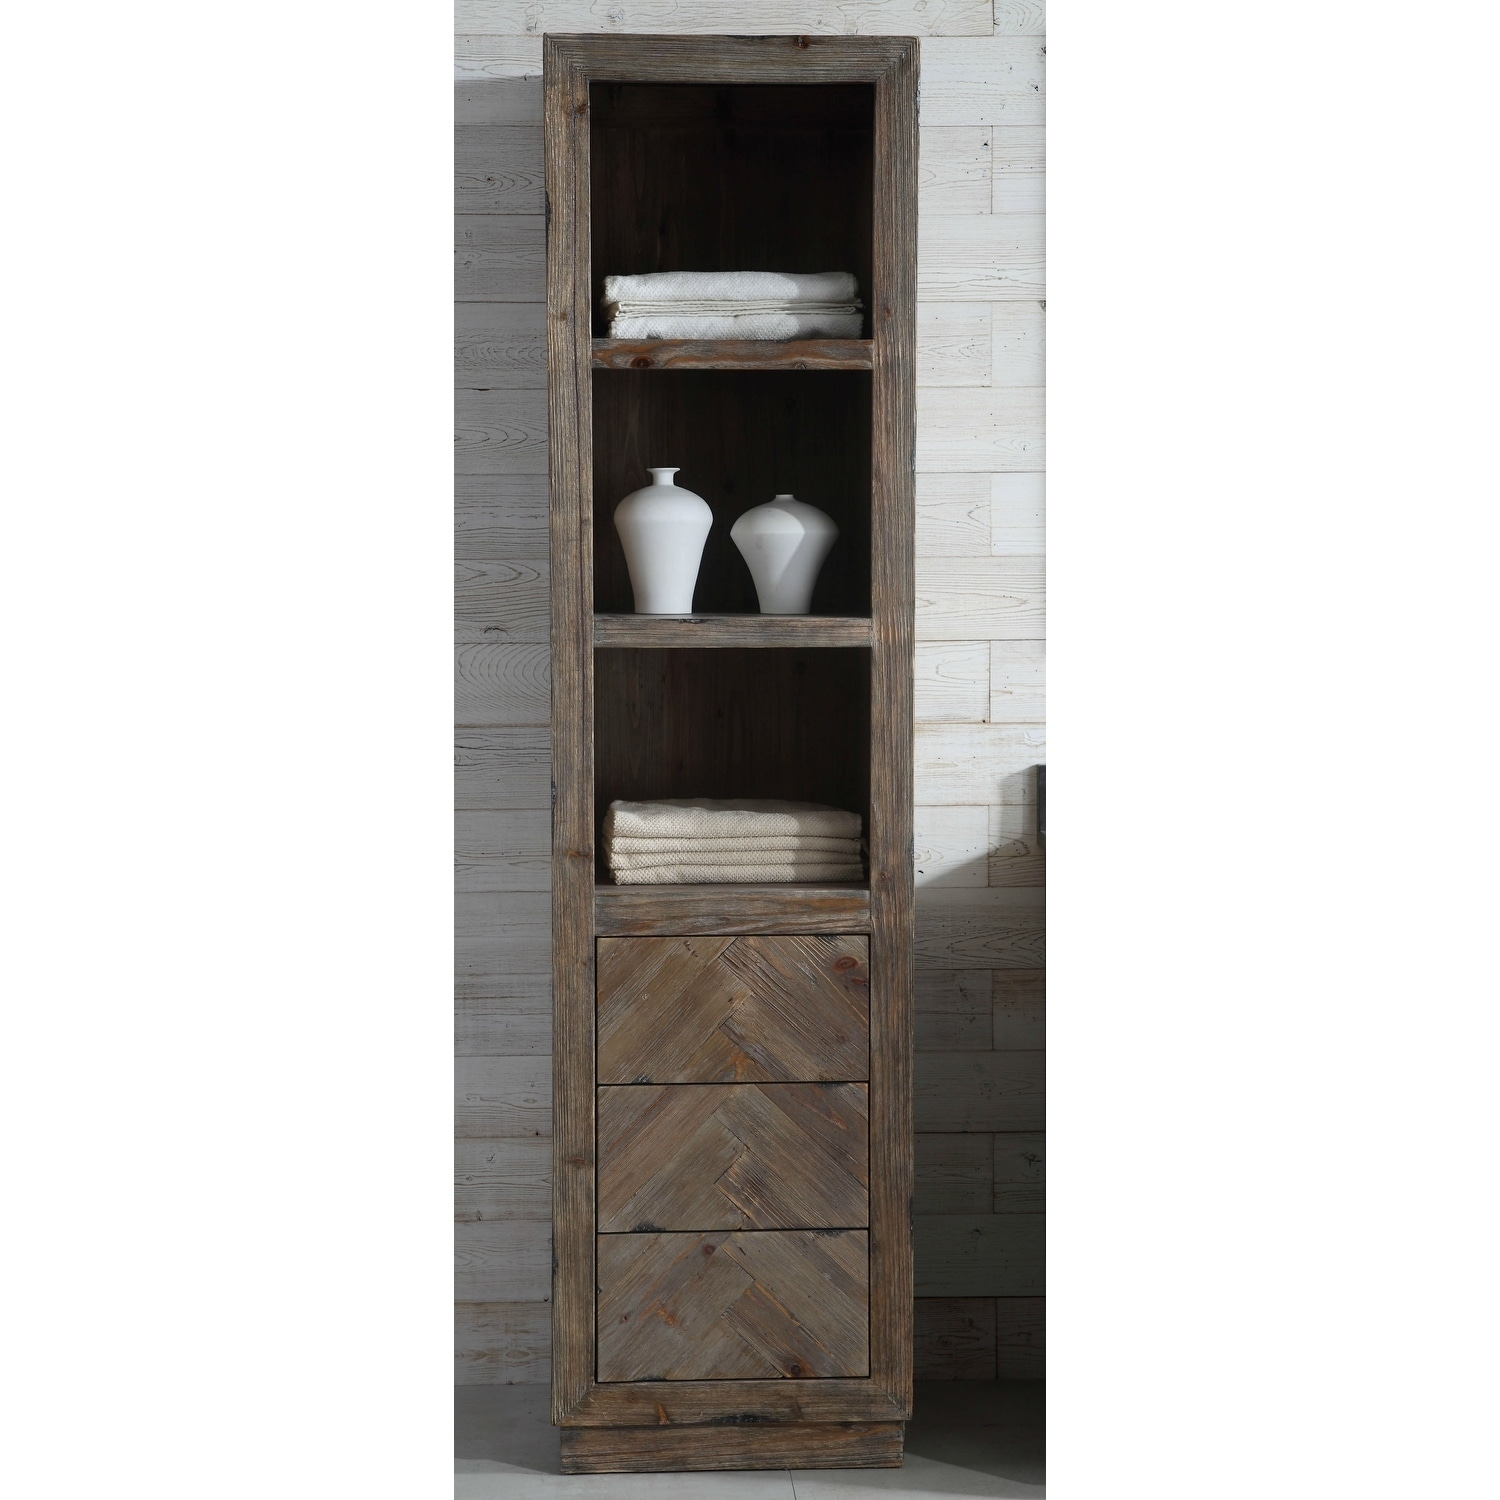 Shop legion furniture brown wood 20 inch floor cabinet free shipping today overstock com 20586216